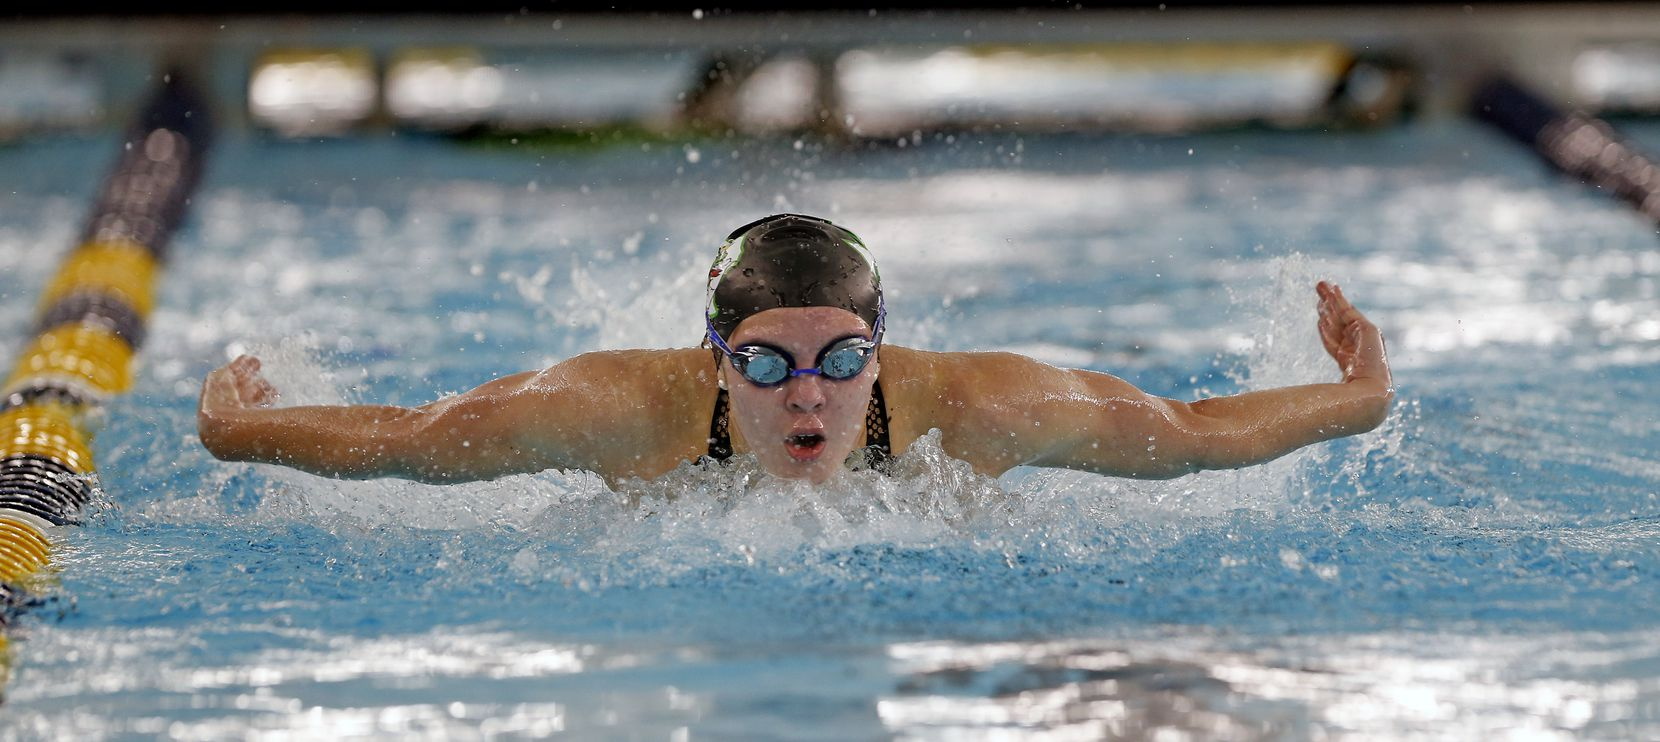 Corbyn Cormack, Southlake Carroll, shows her winning form in the 100-yard butterfly at the UIL Girls 6A Finals on Monday, March 1, 2021, at the Bill Walker Pool and Josh Davis Natatorium.